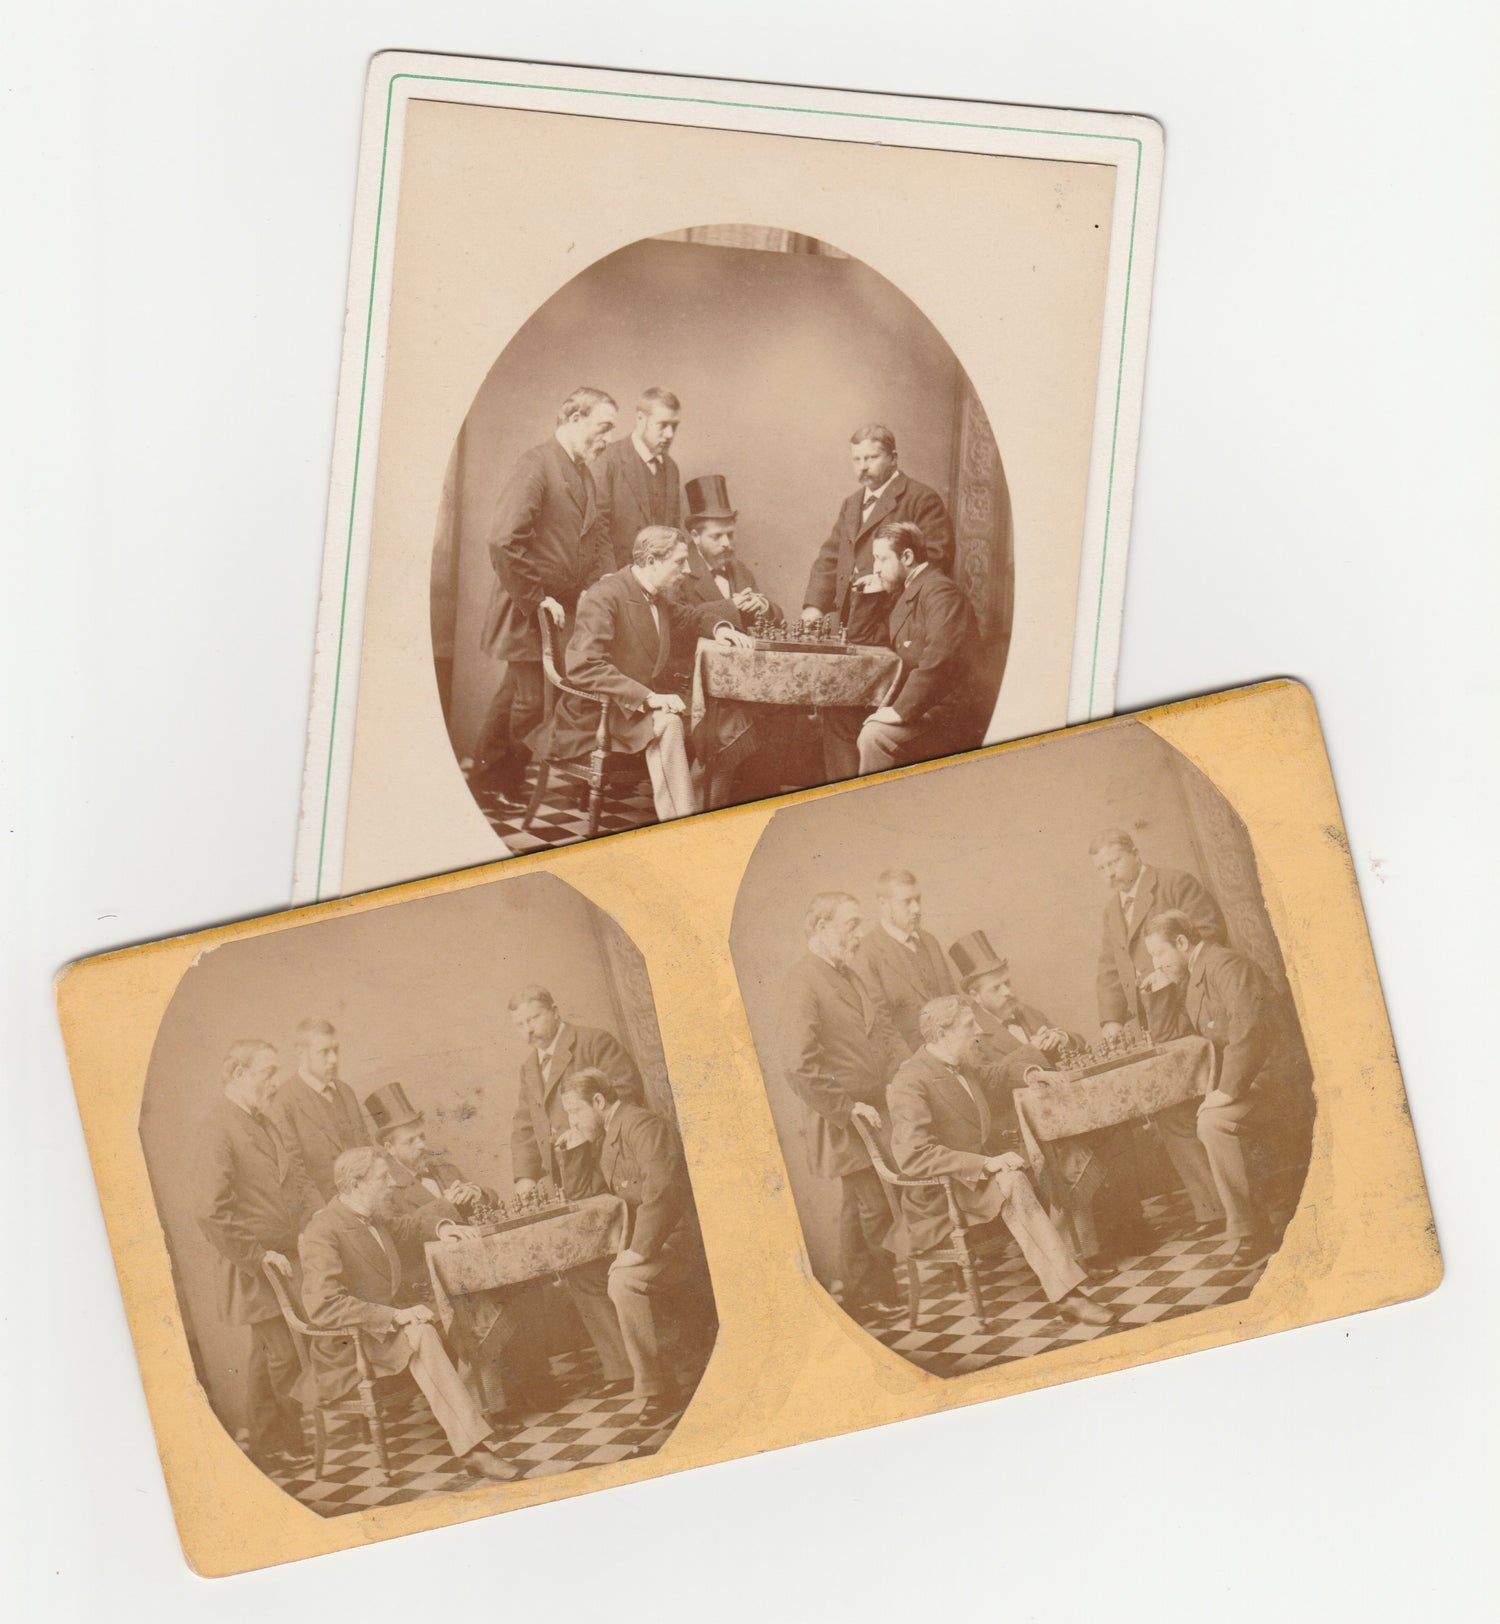 Image of Playing Chess: cabinet card and stereo print, ca. 1875